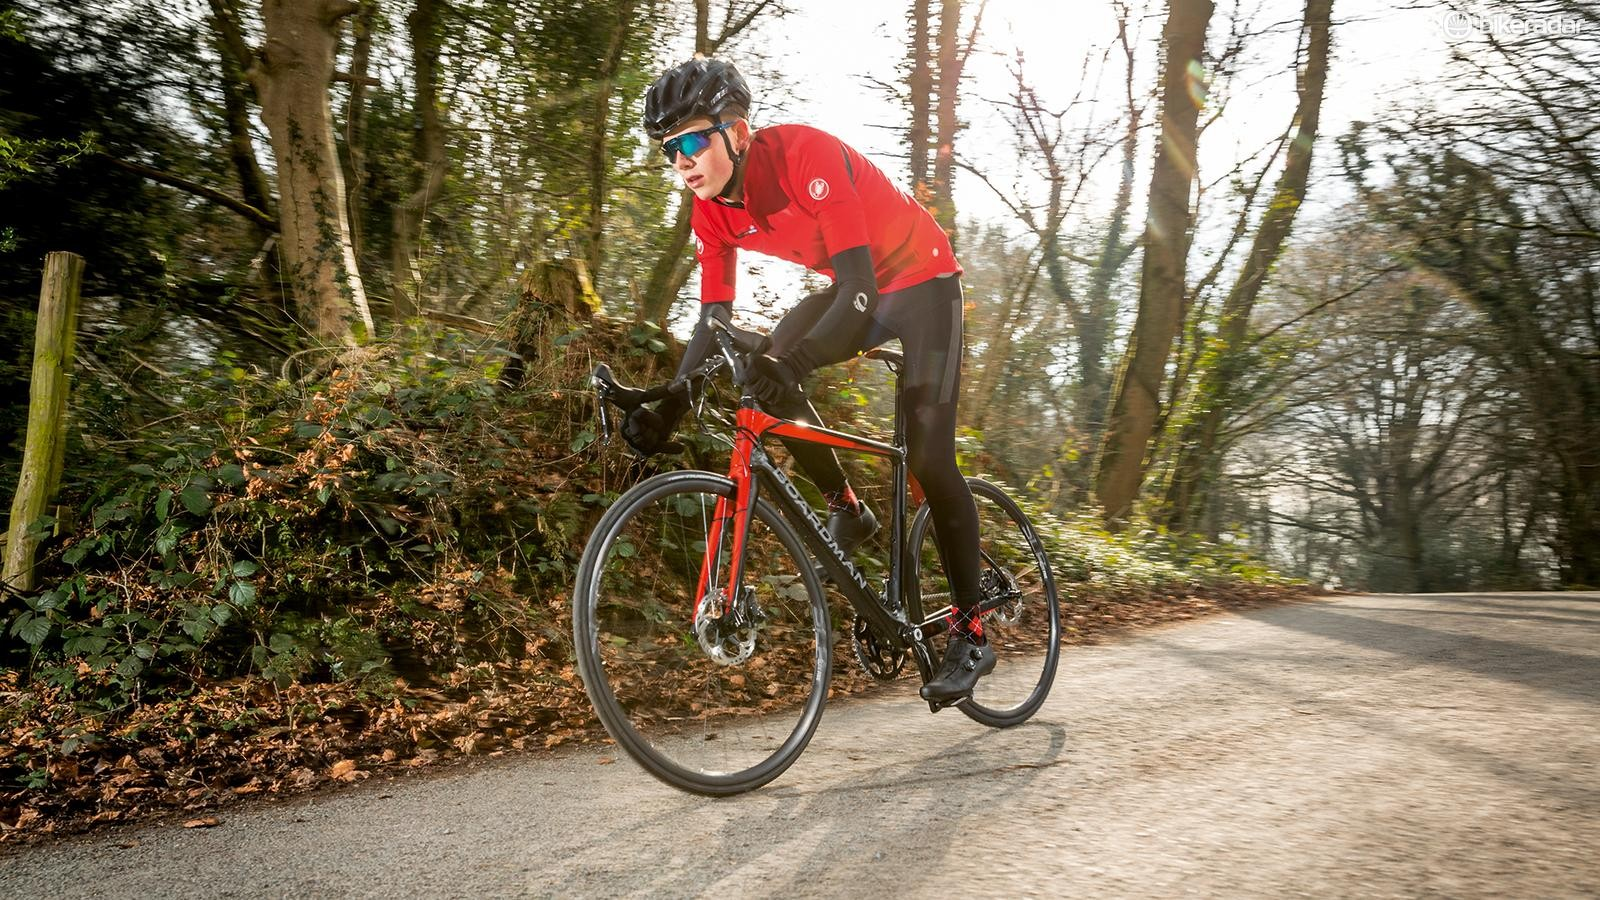 Its low weight puts the Boardman in pole position when it comes to sheer speed